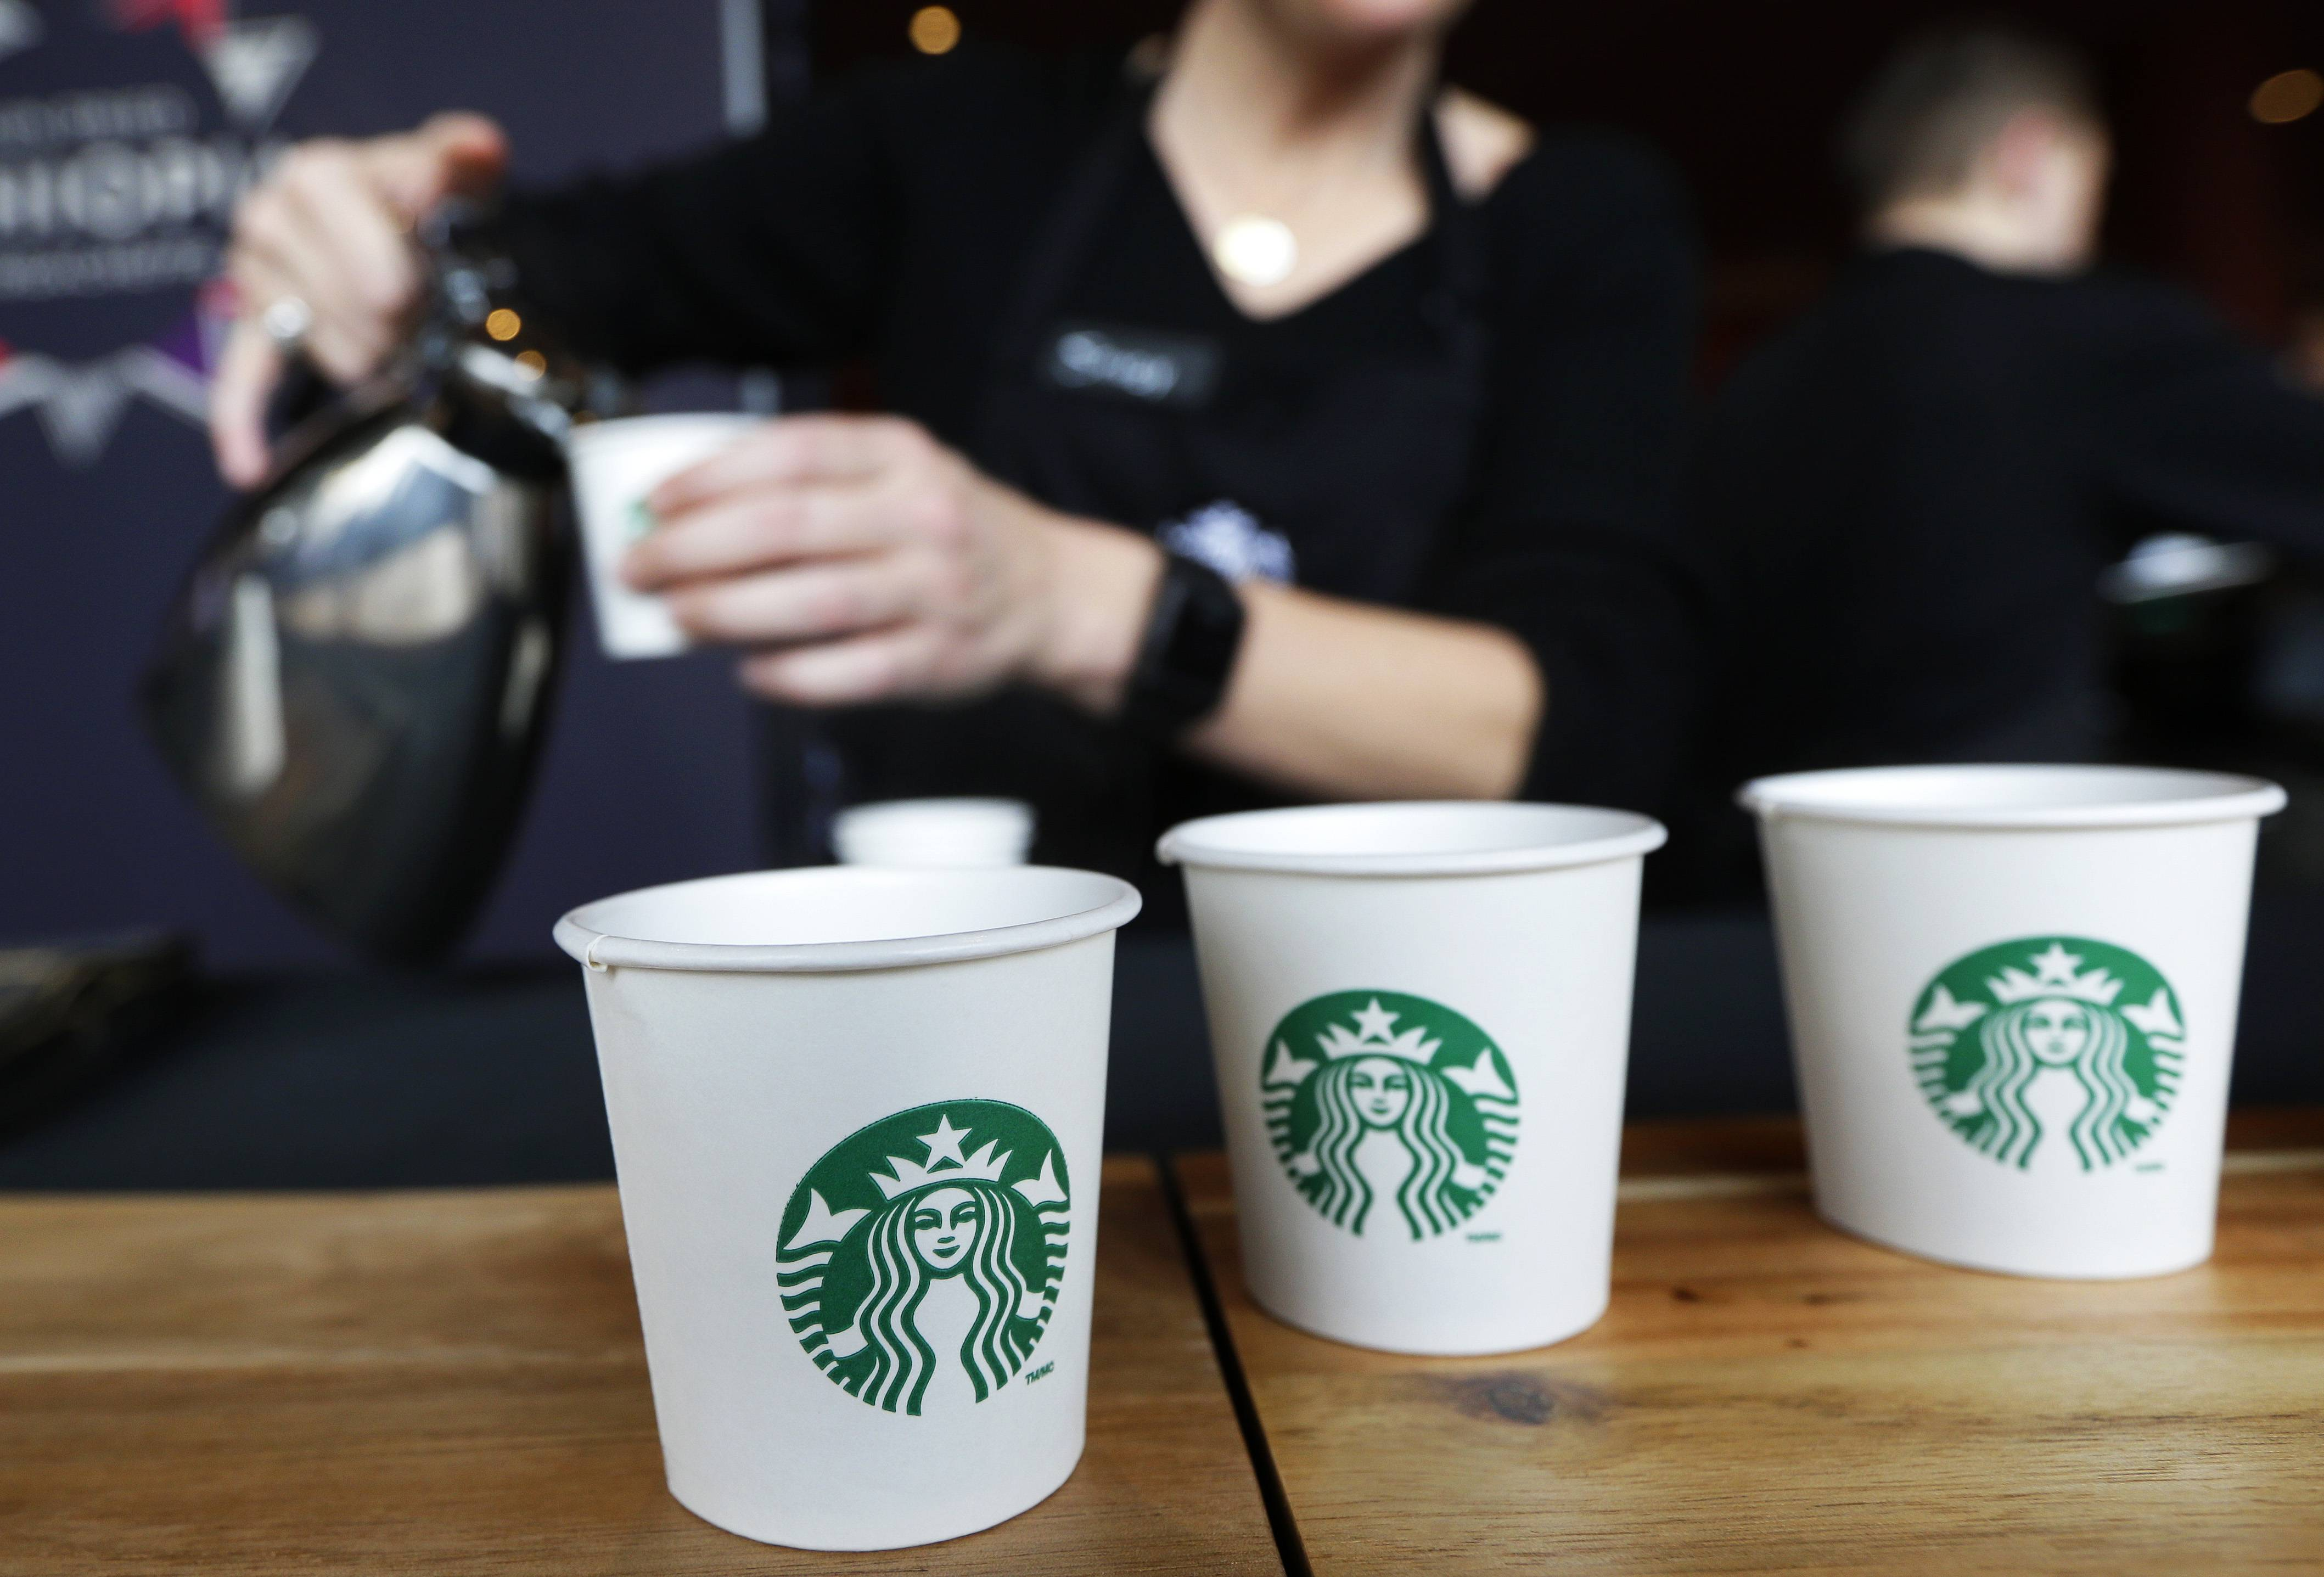 Starbucks reported a stronger quarterly profit on Thursday as customers in the U.S. continued shelling out more money at its cafes.